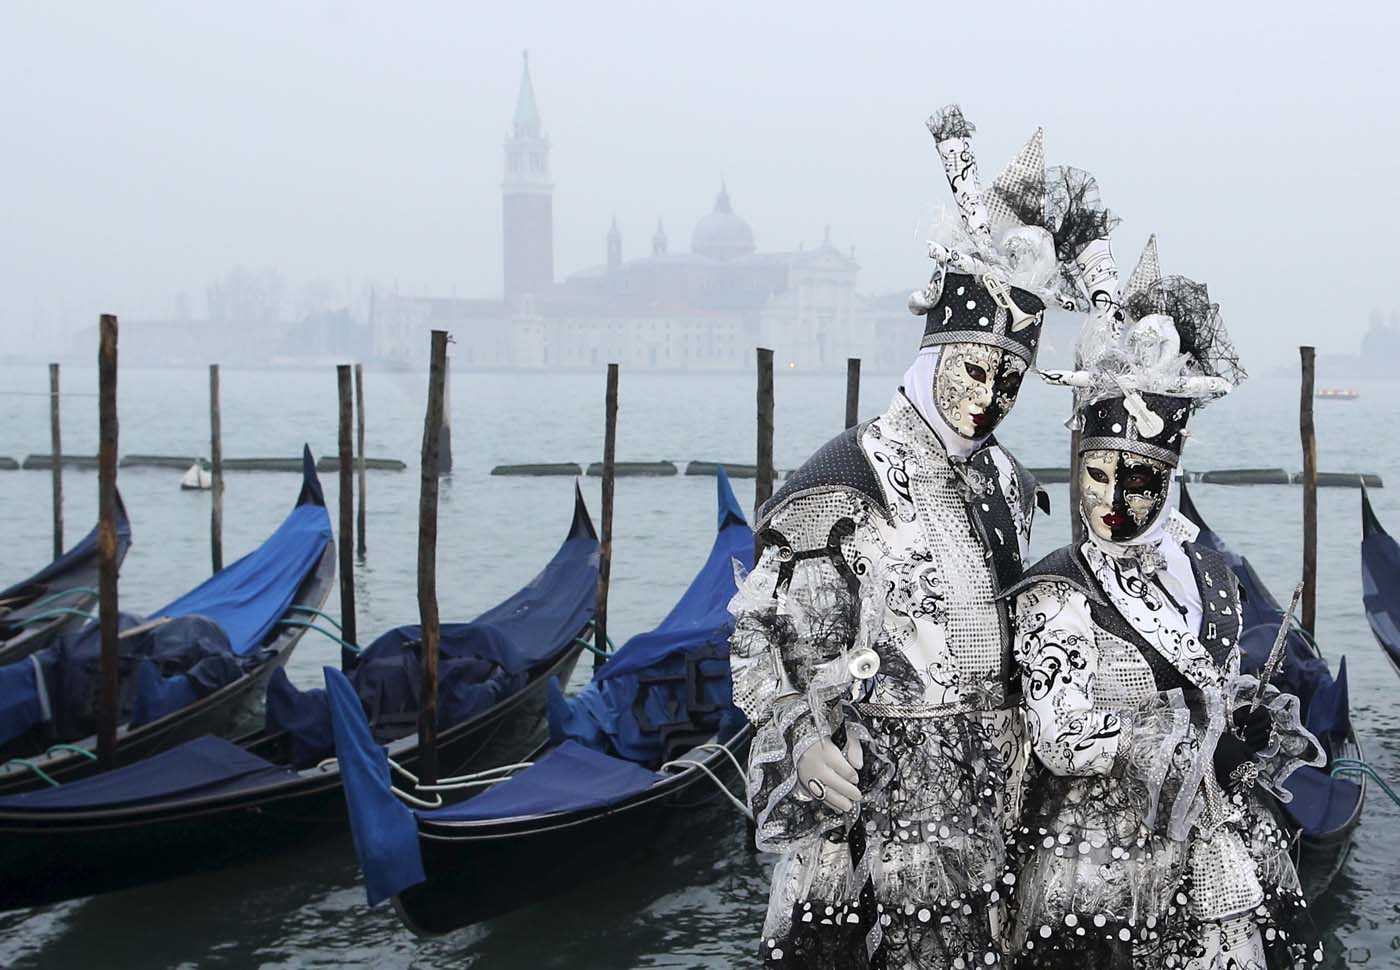 Masked revellers pose during the Venice Carnival, in San Marco Piazza January 30, 2016. REUTERS/Alessandro Bianchi